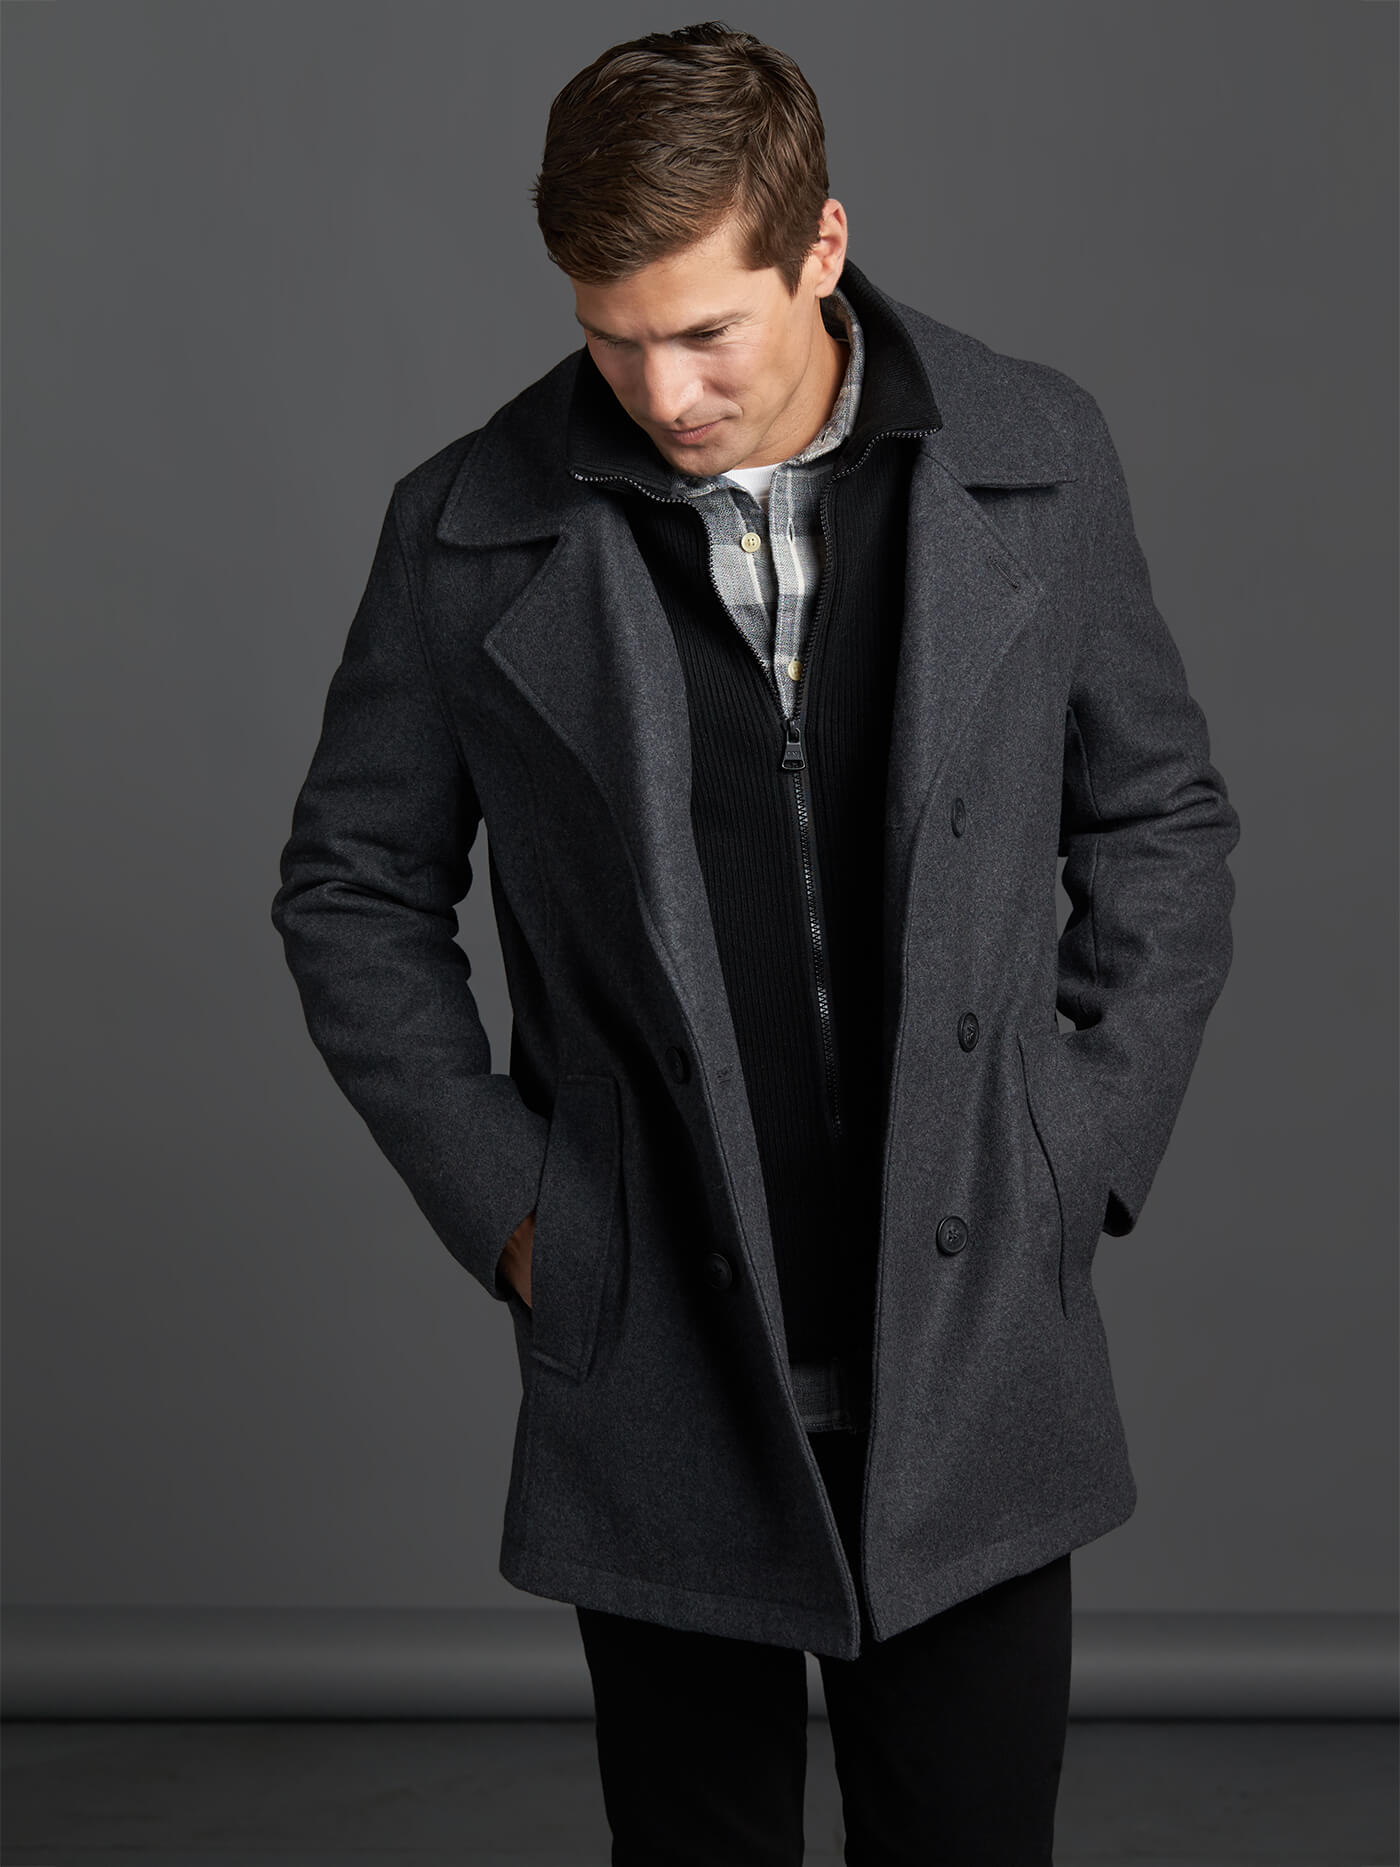 The all weather layering handbook stitch fix men for Heavy button down shirts